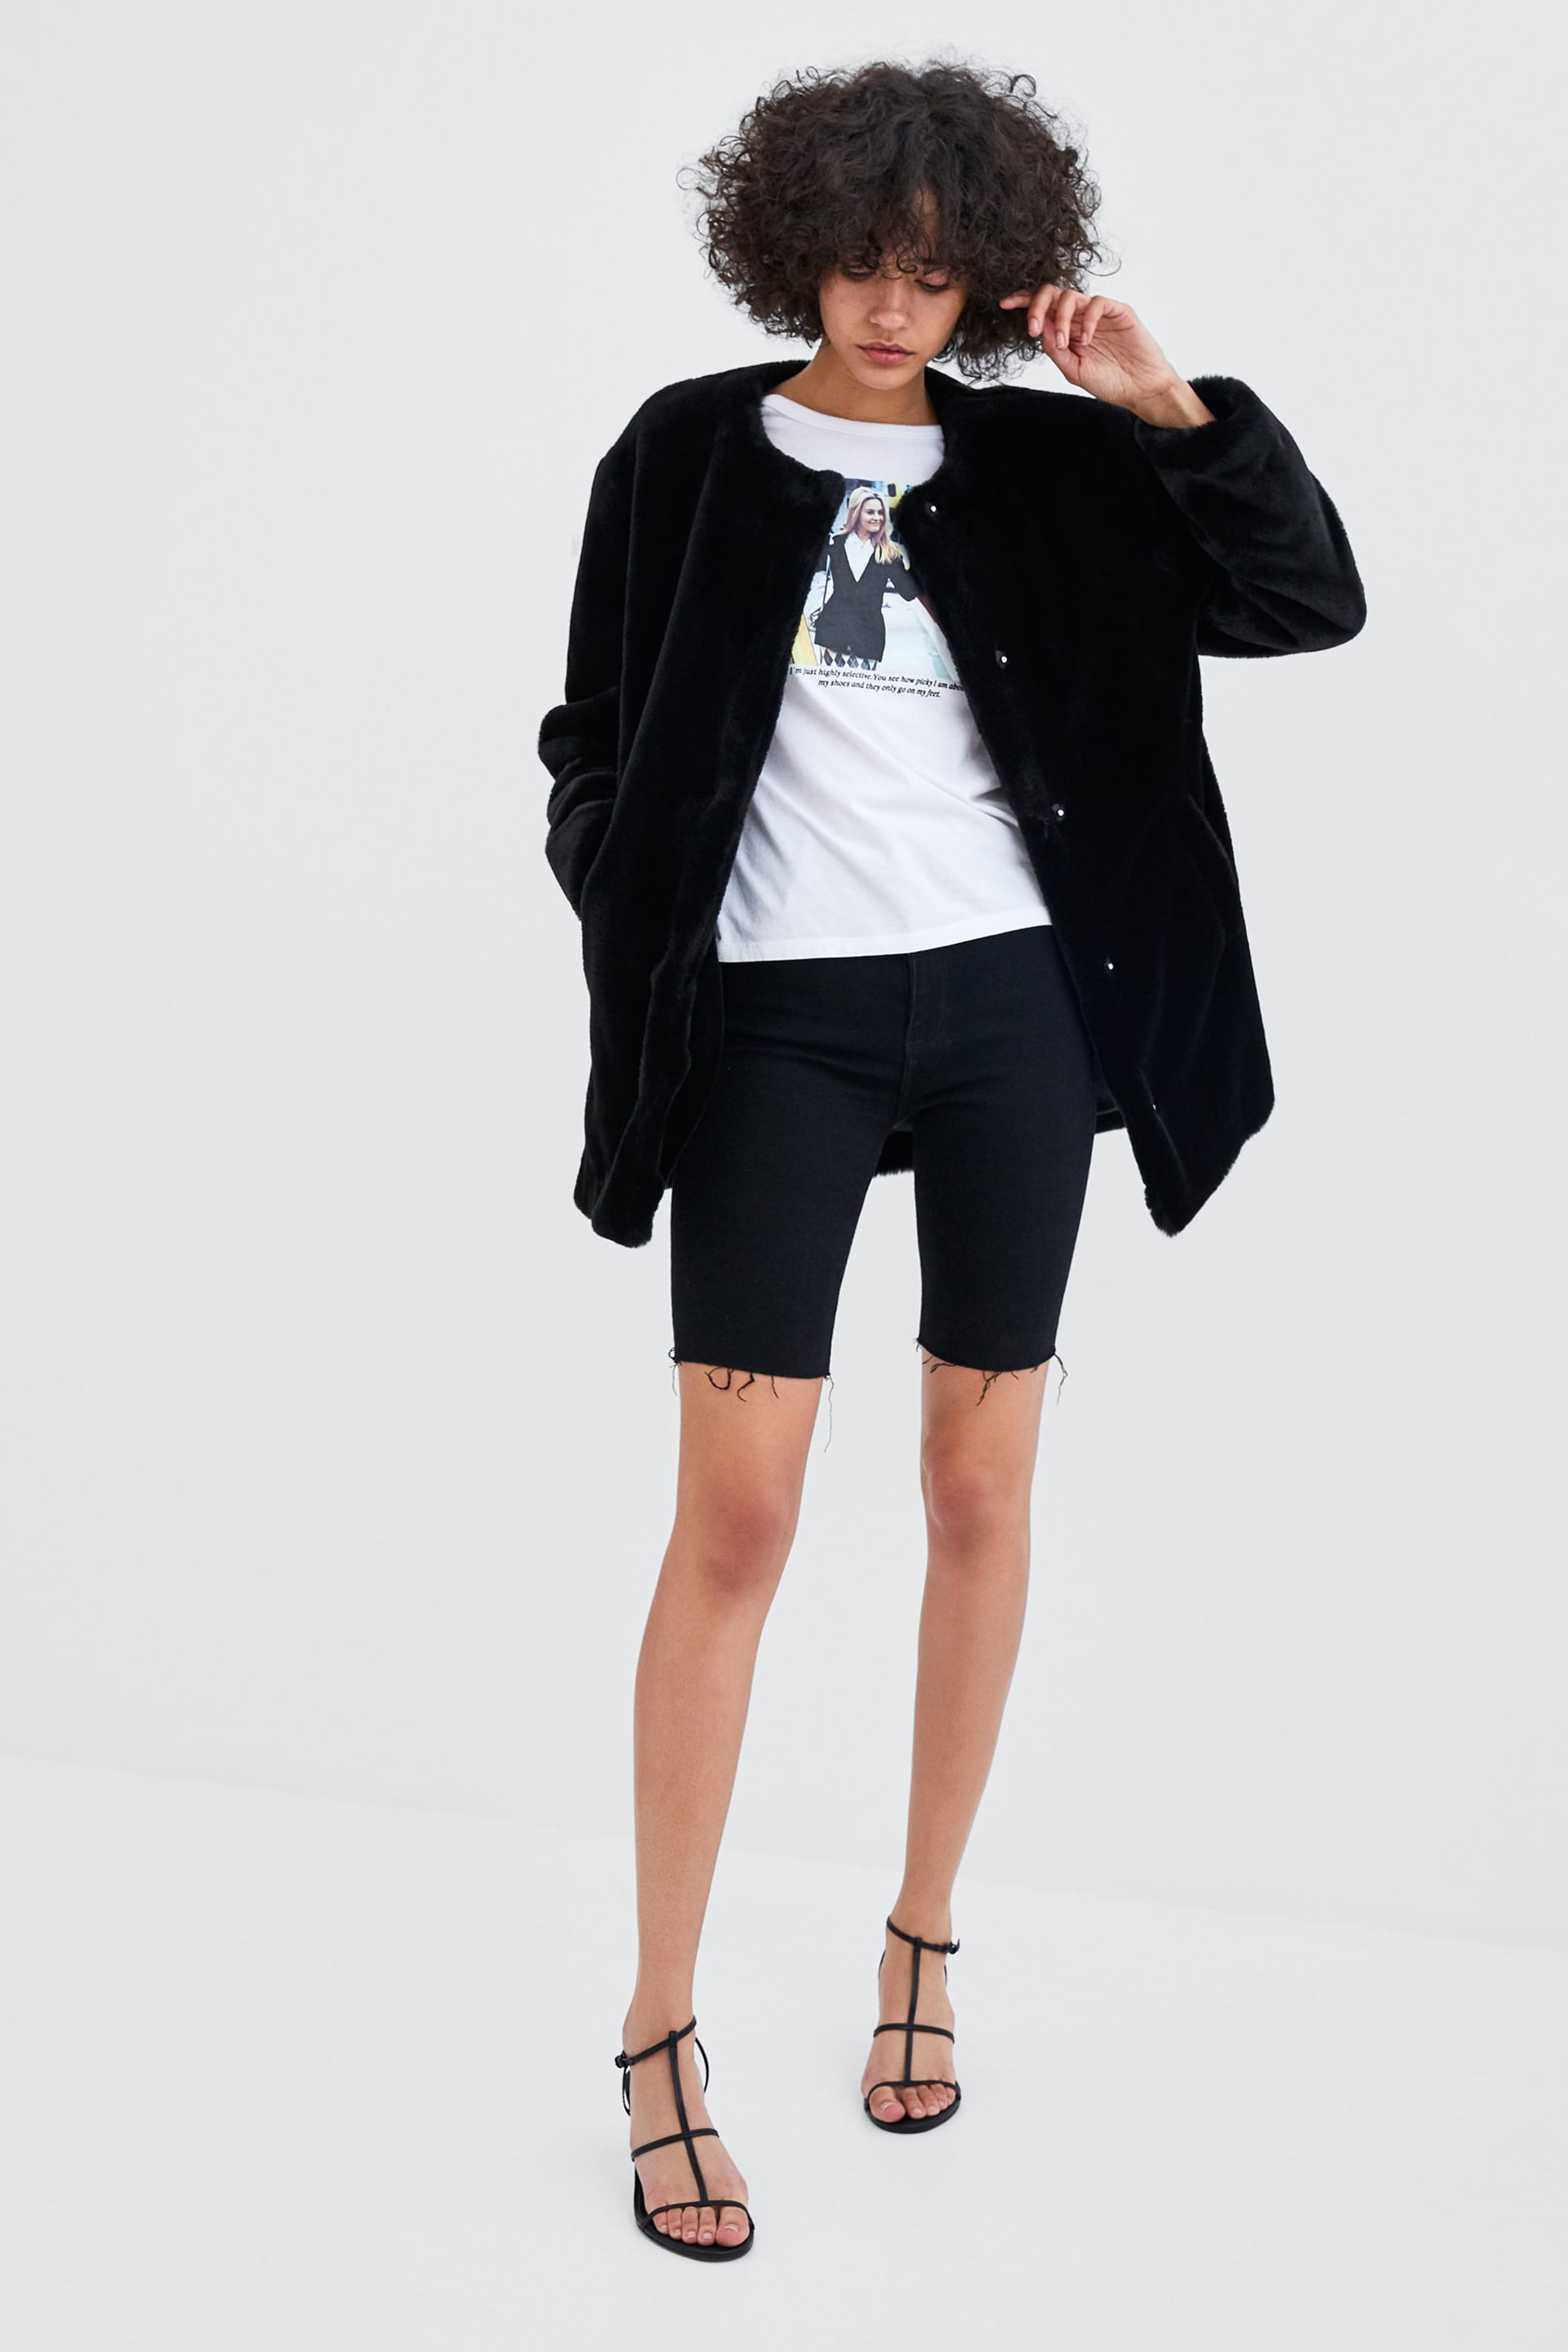 0fdb3ea0 Best Zara Winter Coats 2018: Womens Fur, Puffers & More